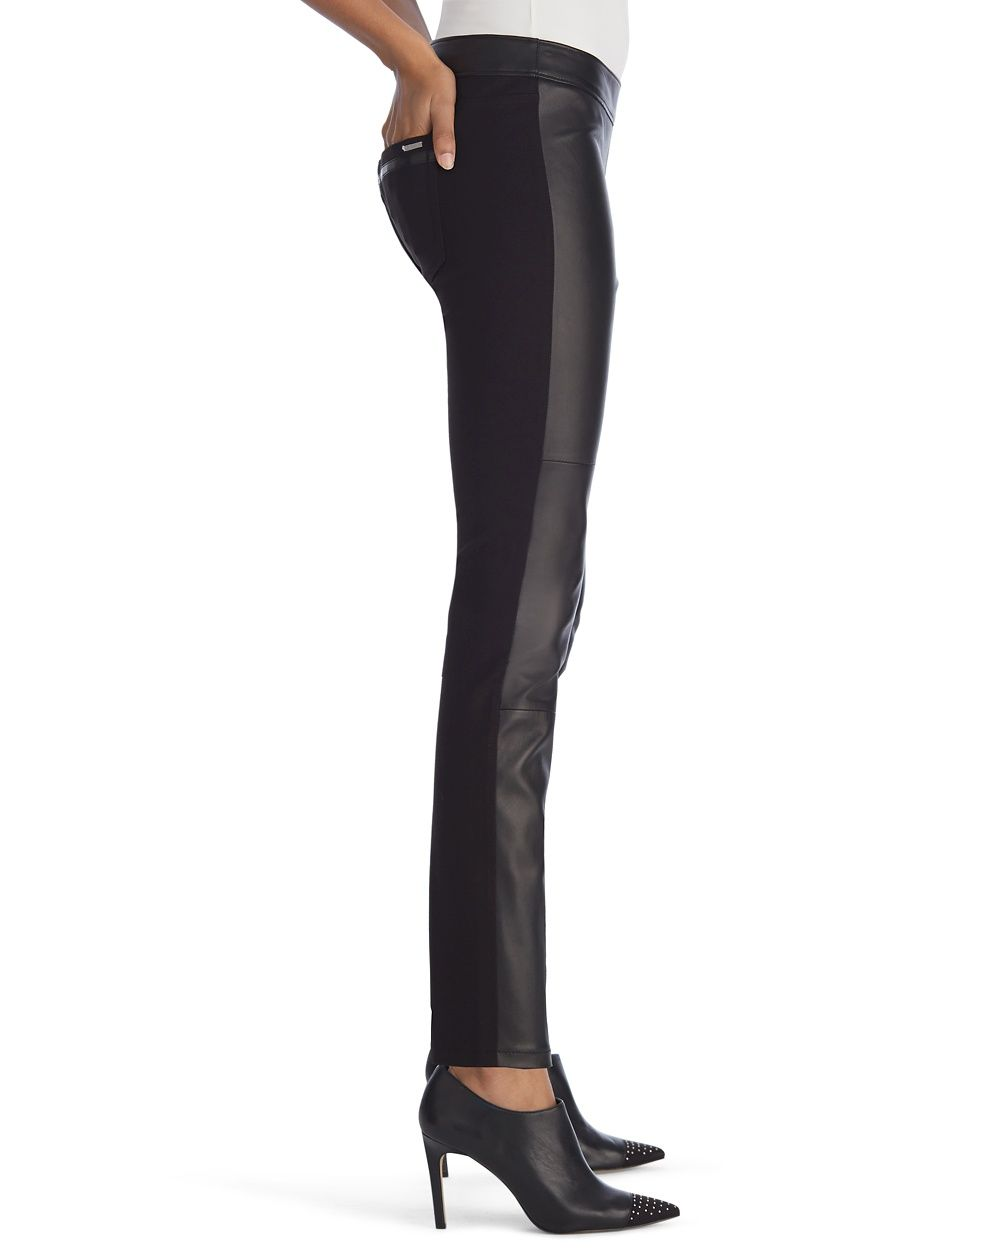 Luxe Leather Front Black Legging - White House | Black Market